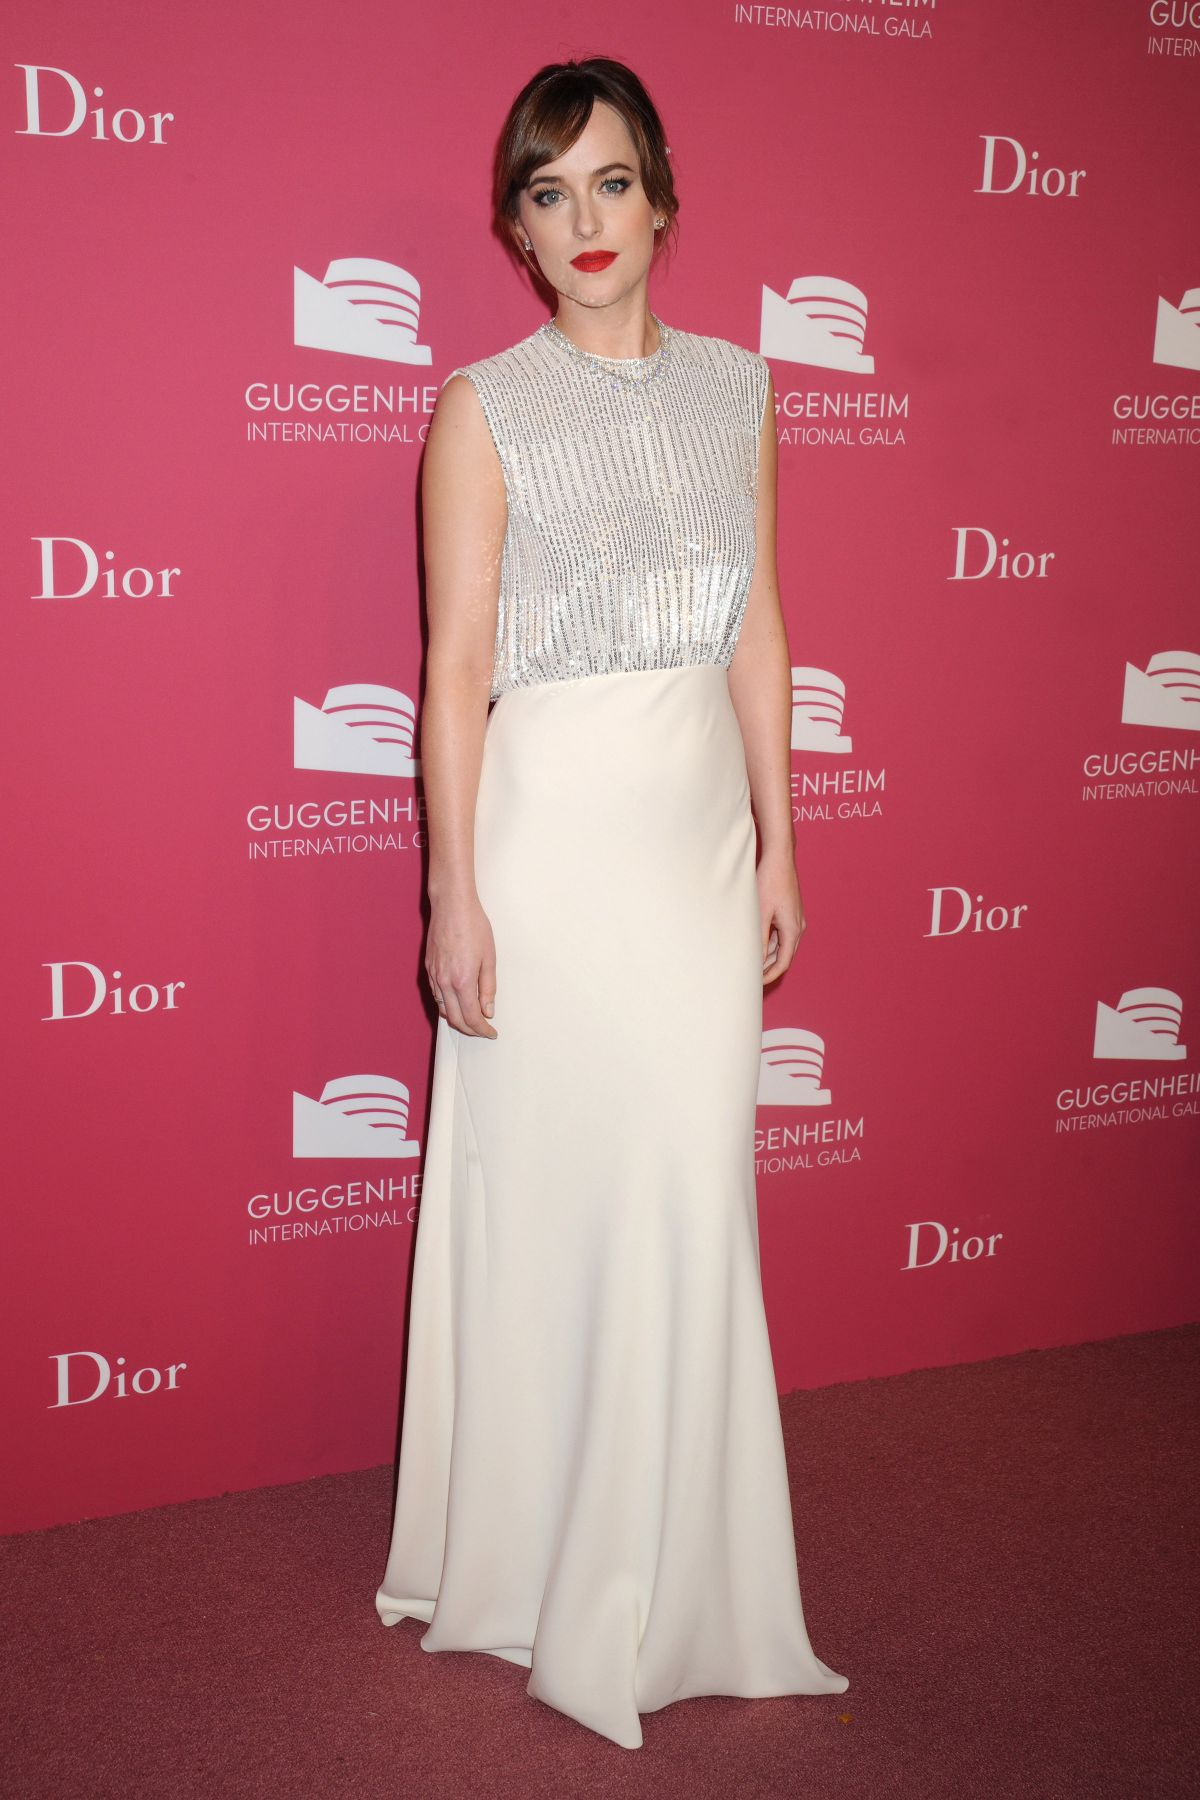 DAKOTA JOHNSON at 2015 Guggenheim International Gala Dinner in New York 11/05/2015